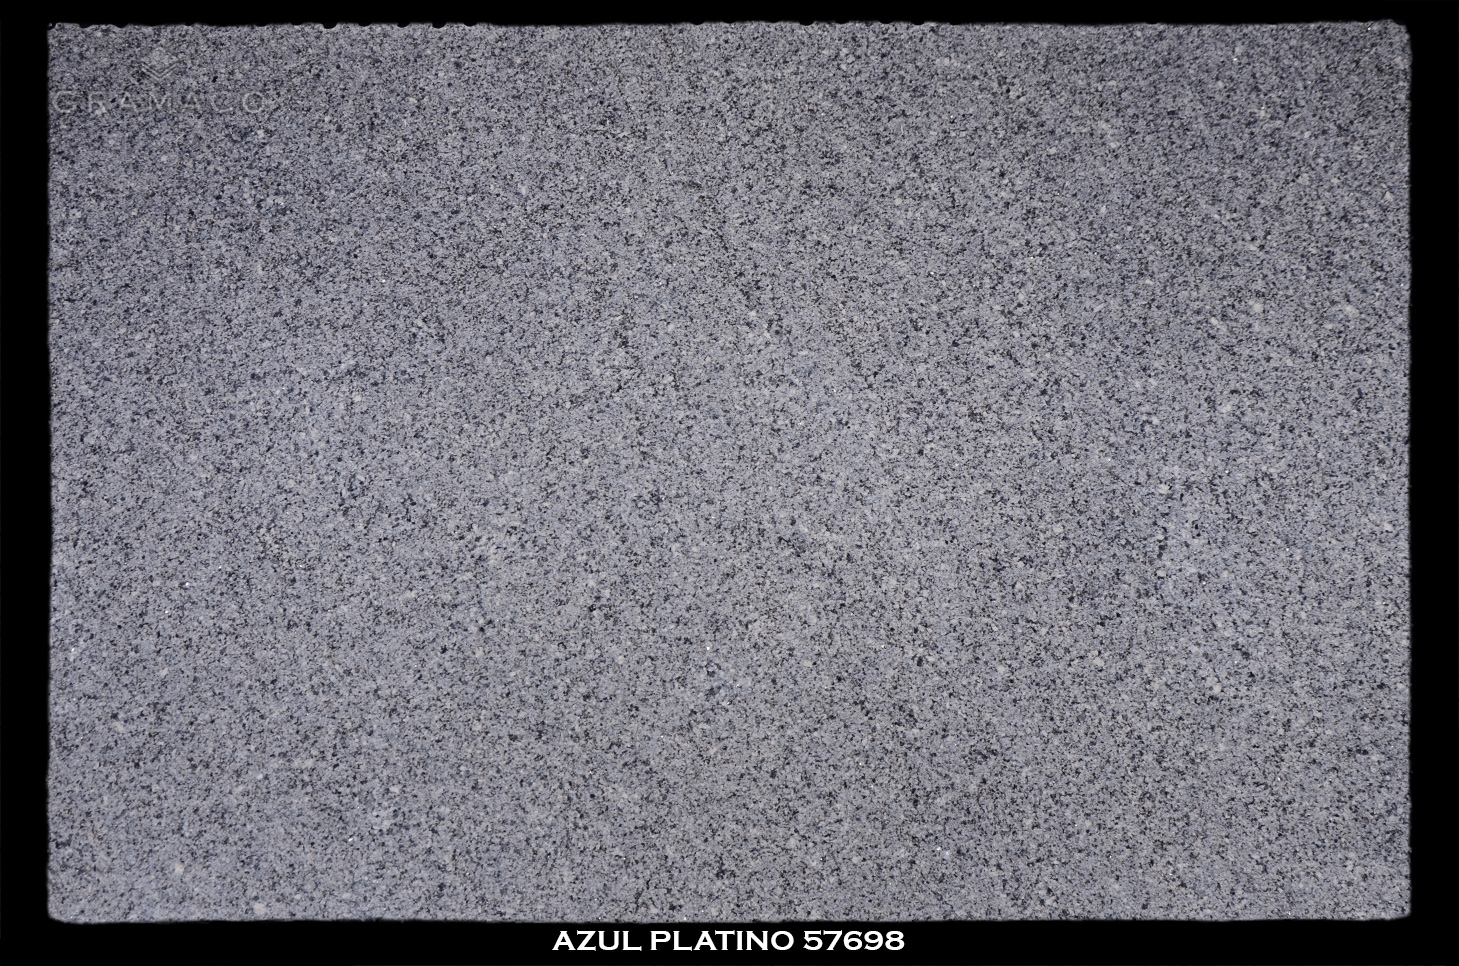 AZUL-PLATINO-57698---FULL-SLAB-BLACK